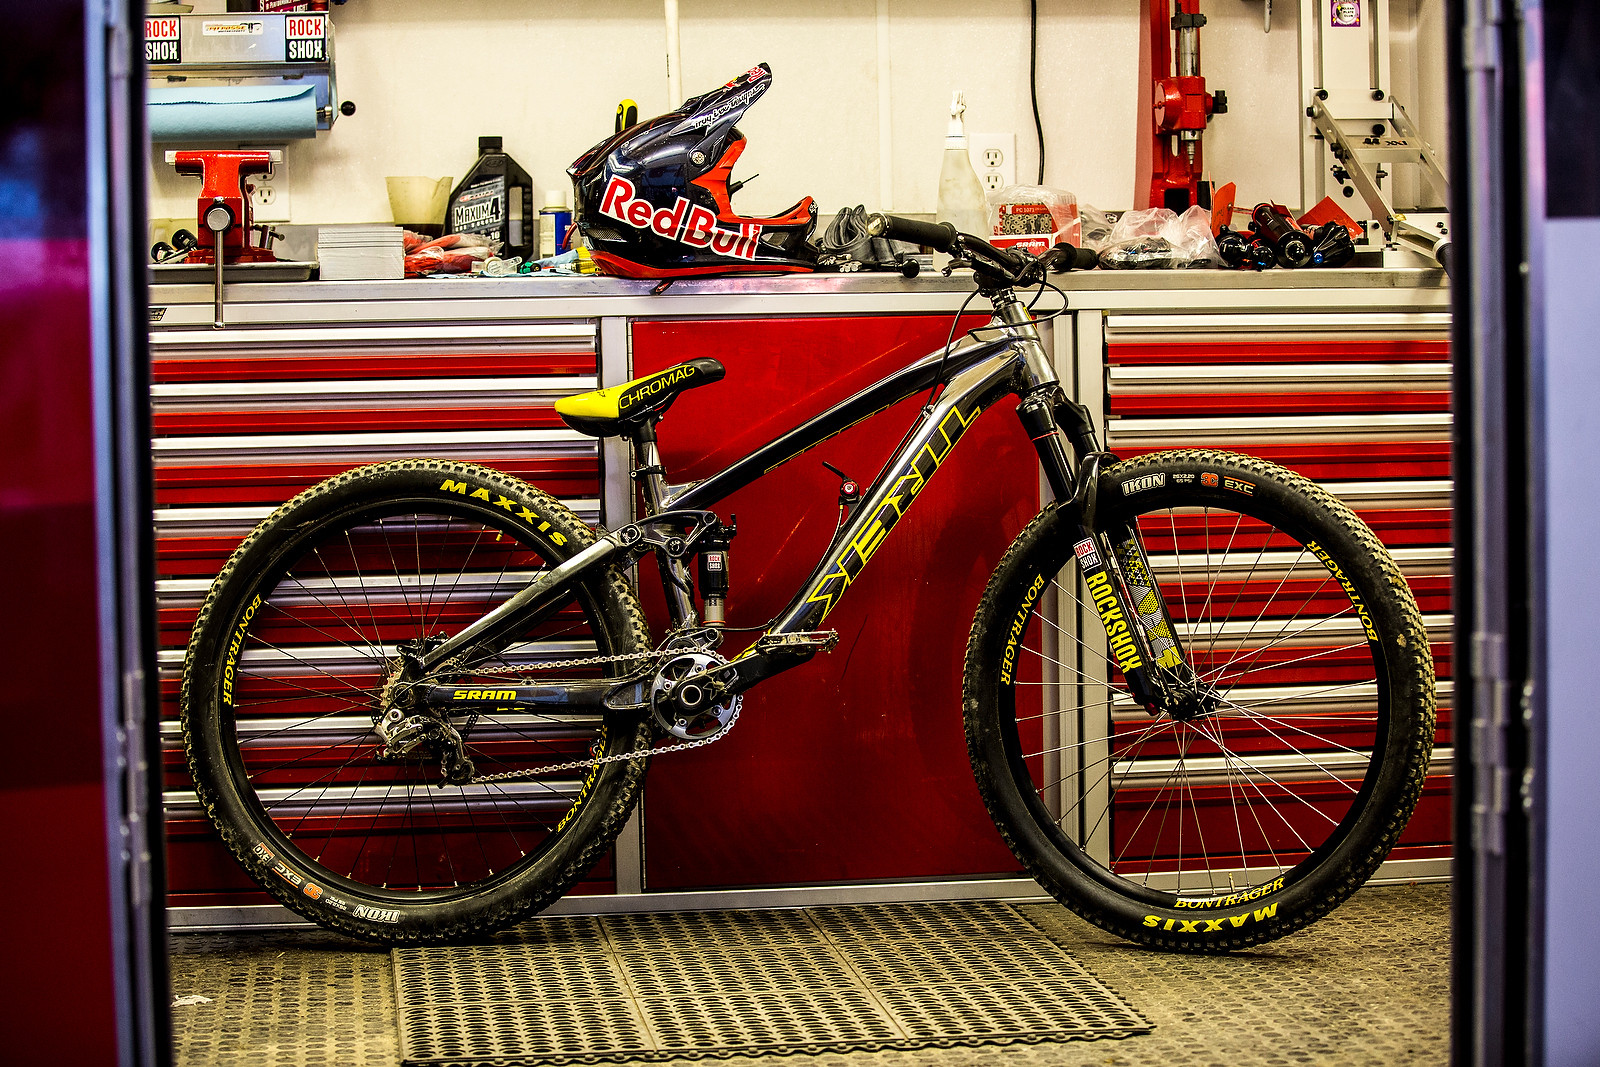 Brandon Semenuk's Winning Bike and Red Bull Joyride Run - Winning Bike: Brandon Semenuk's Trek Ticket S - Mountain Biking Pictures - Vital MTB